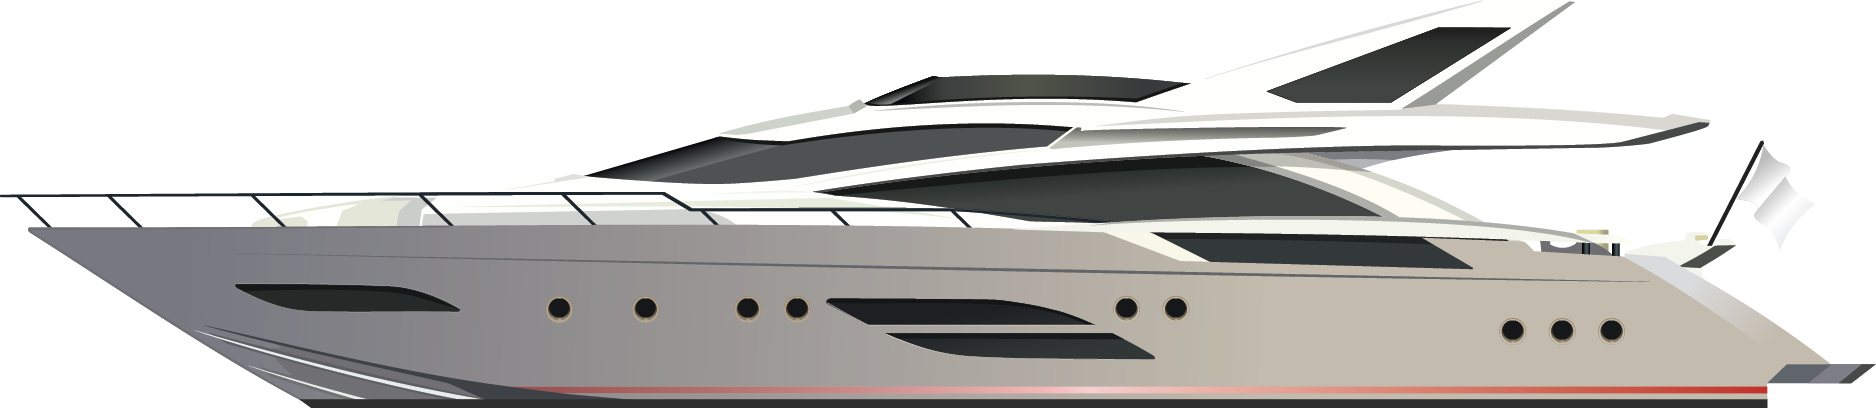 vector download Mega transport we all. Yacht clipart yatch